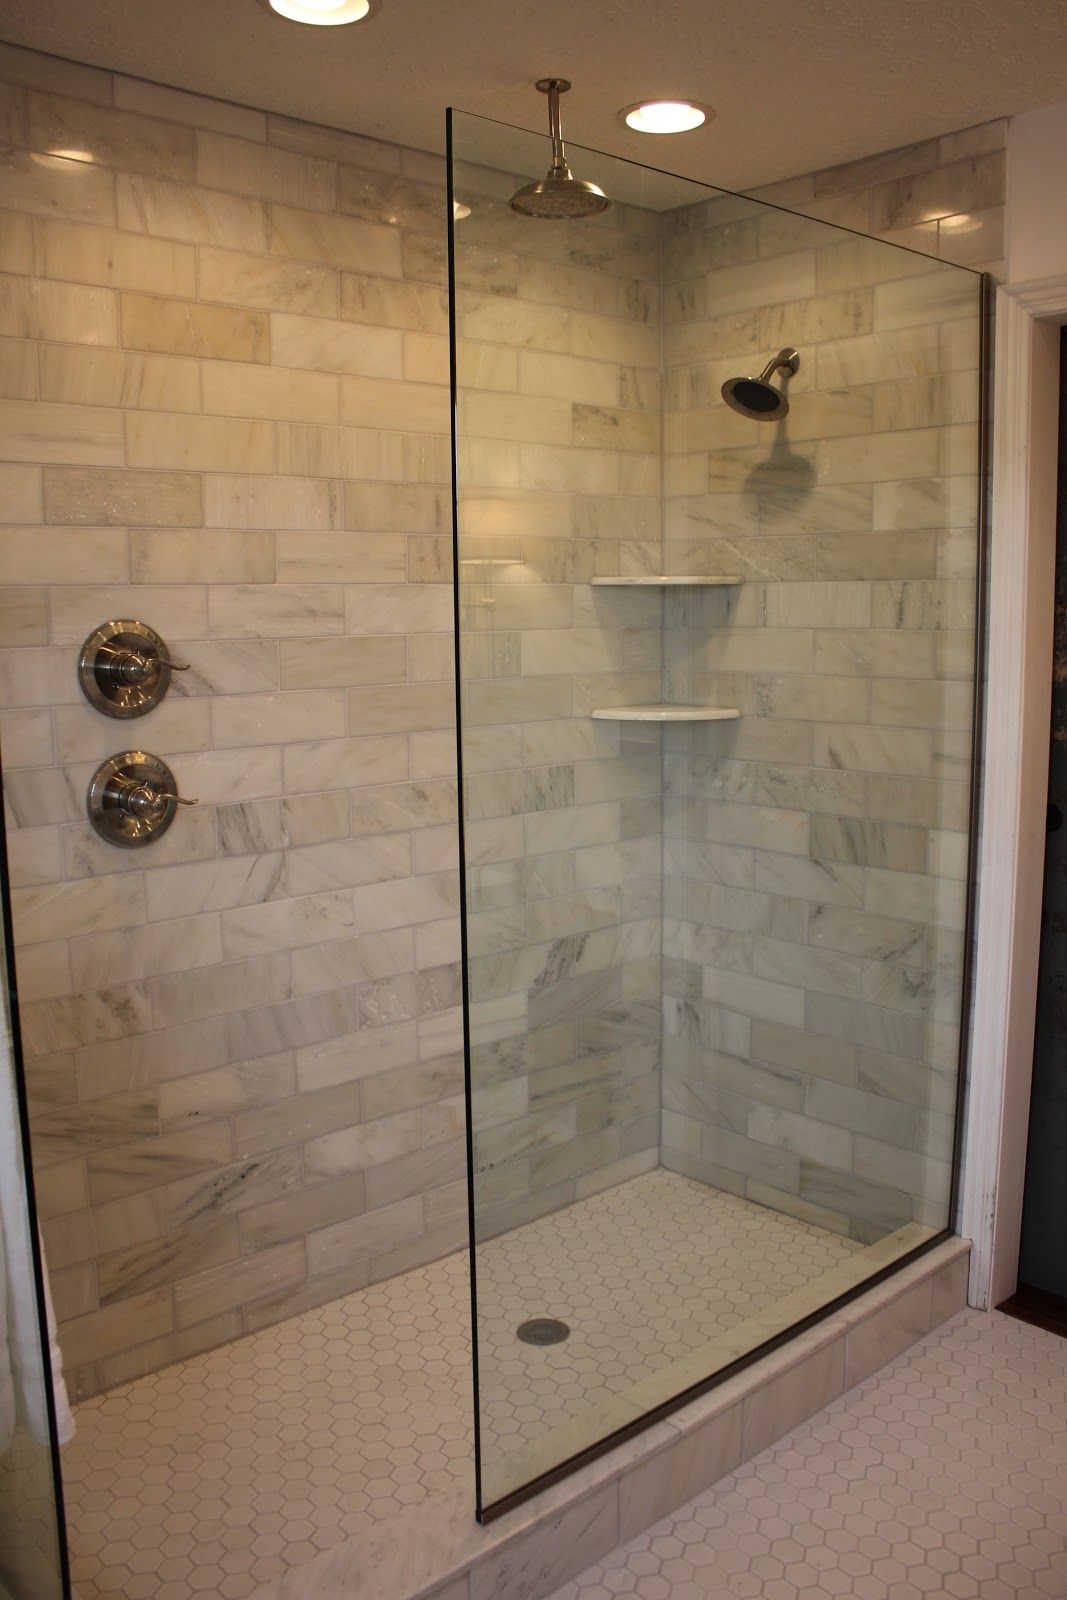 Small bathroom shower doors - 17 Best Images About Bathroom On Pinterest Bathrooms Shower Doors And Shower Tiles